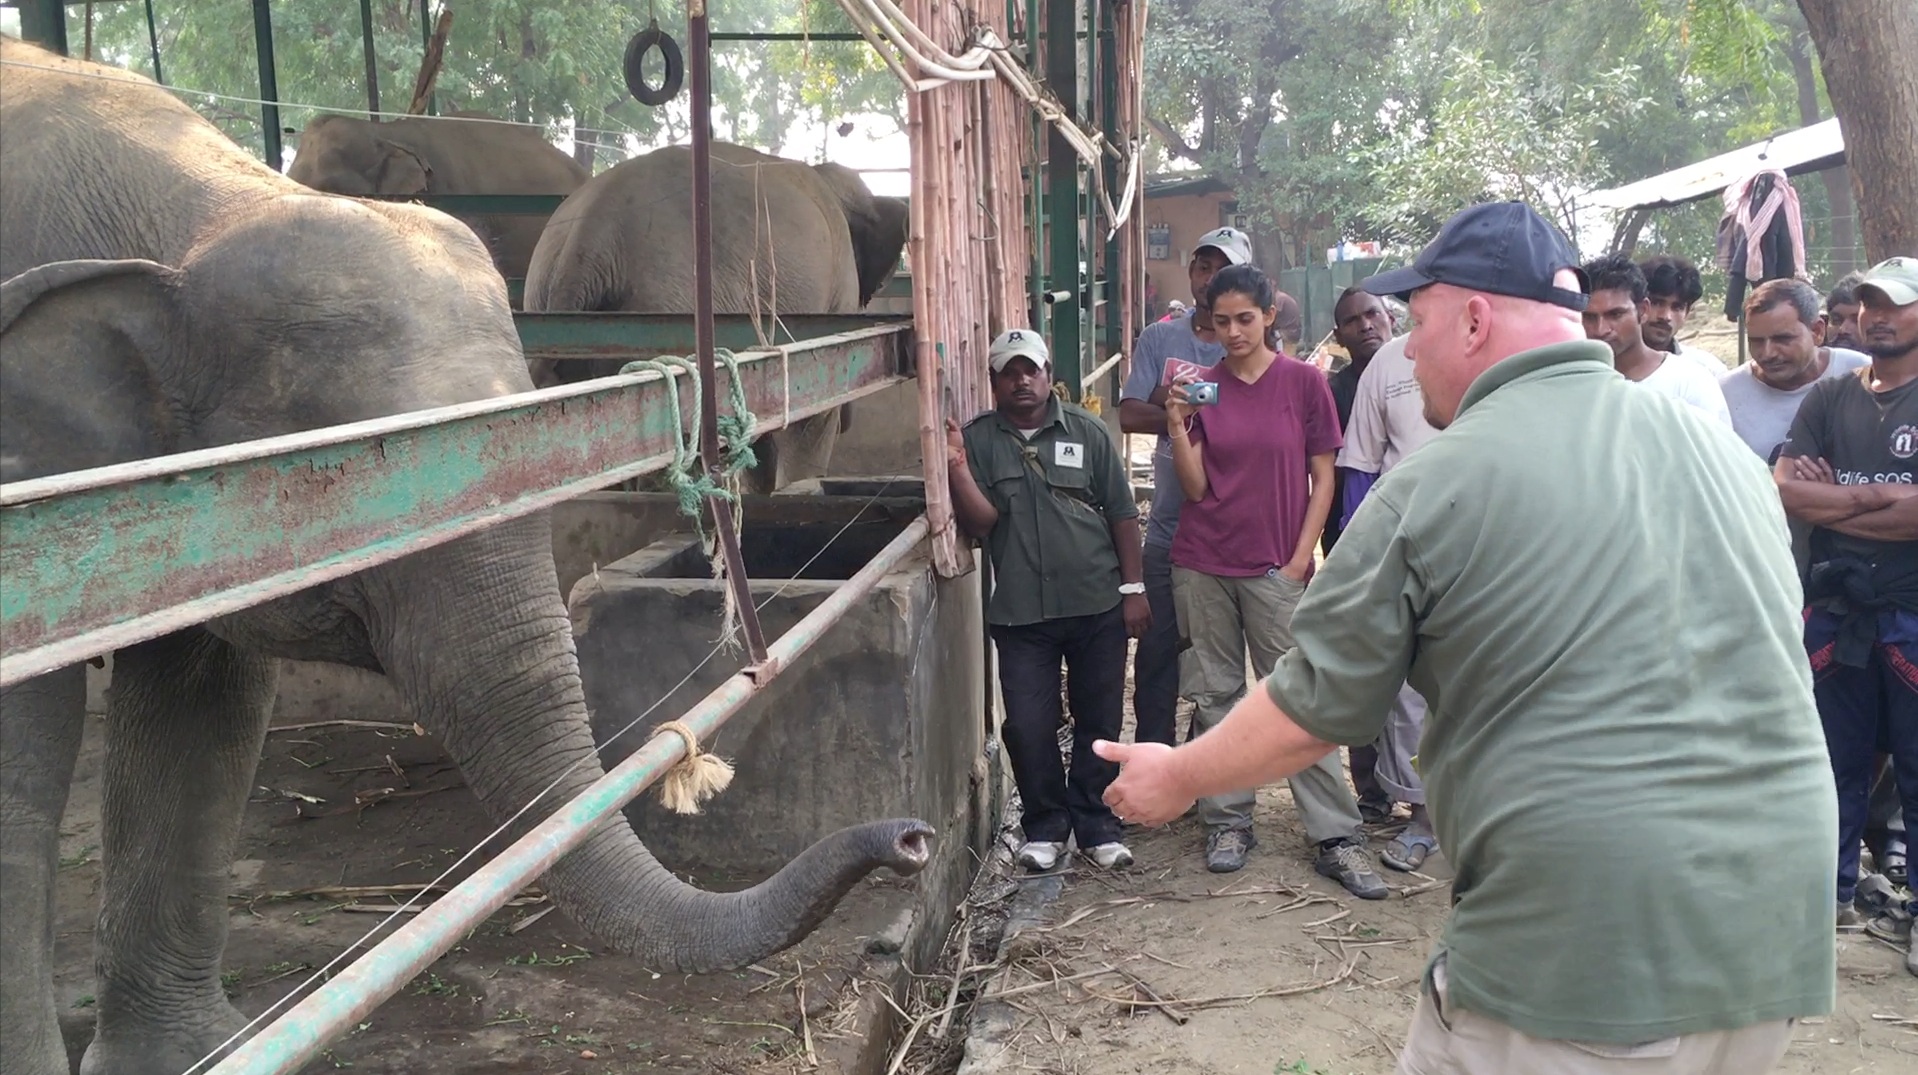 Eric teaching the mahouts in India helpful methods to care for elephants in rehabilitation centers.